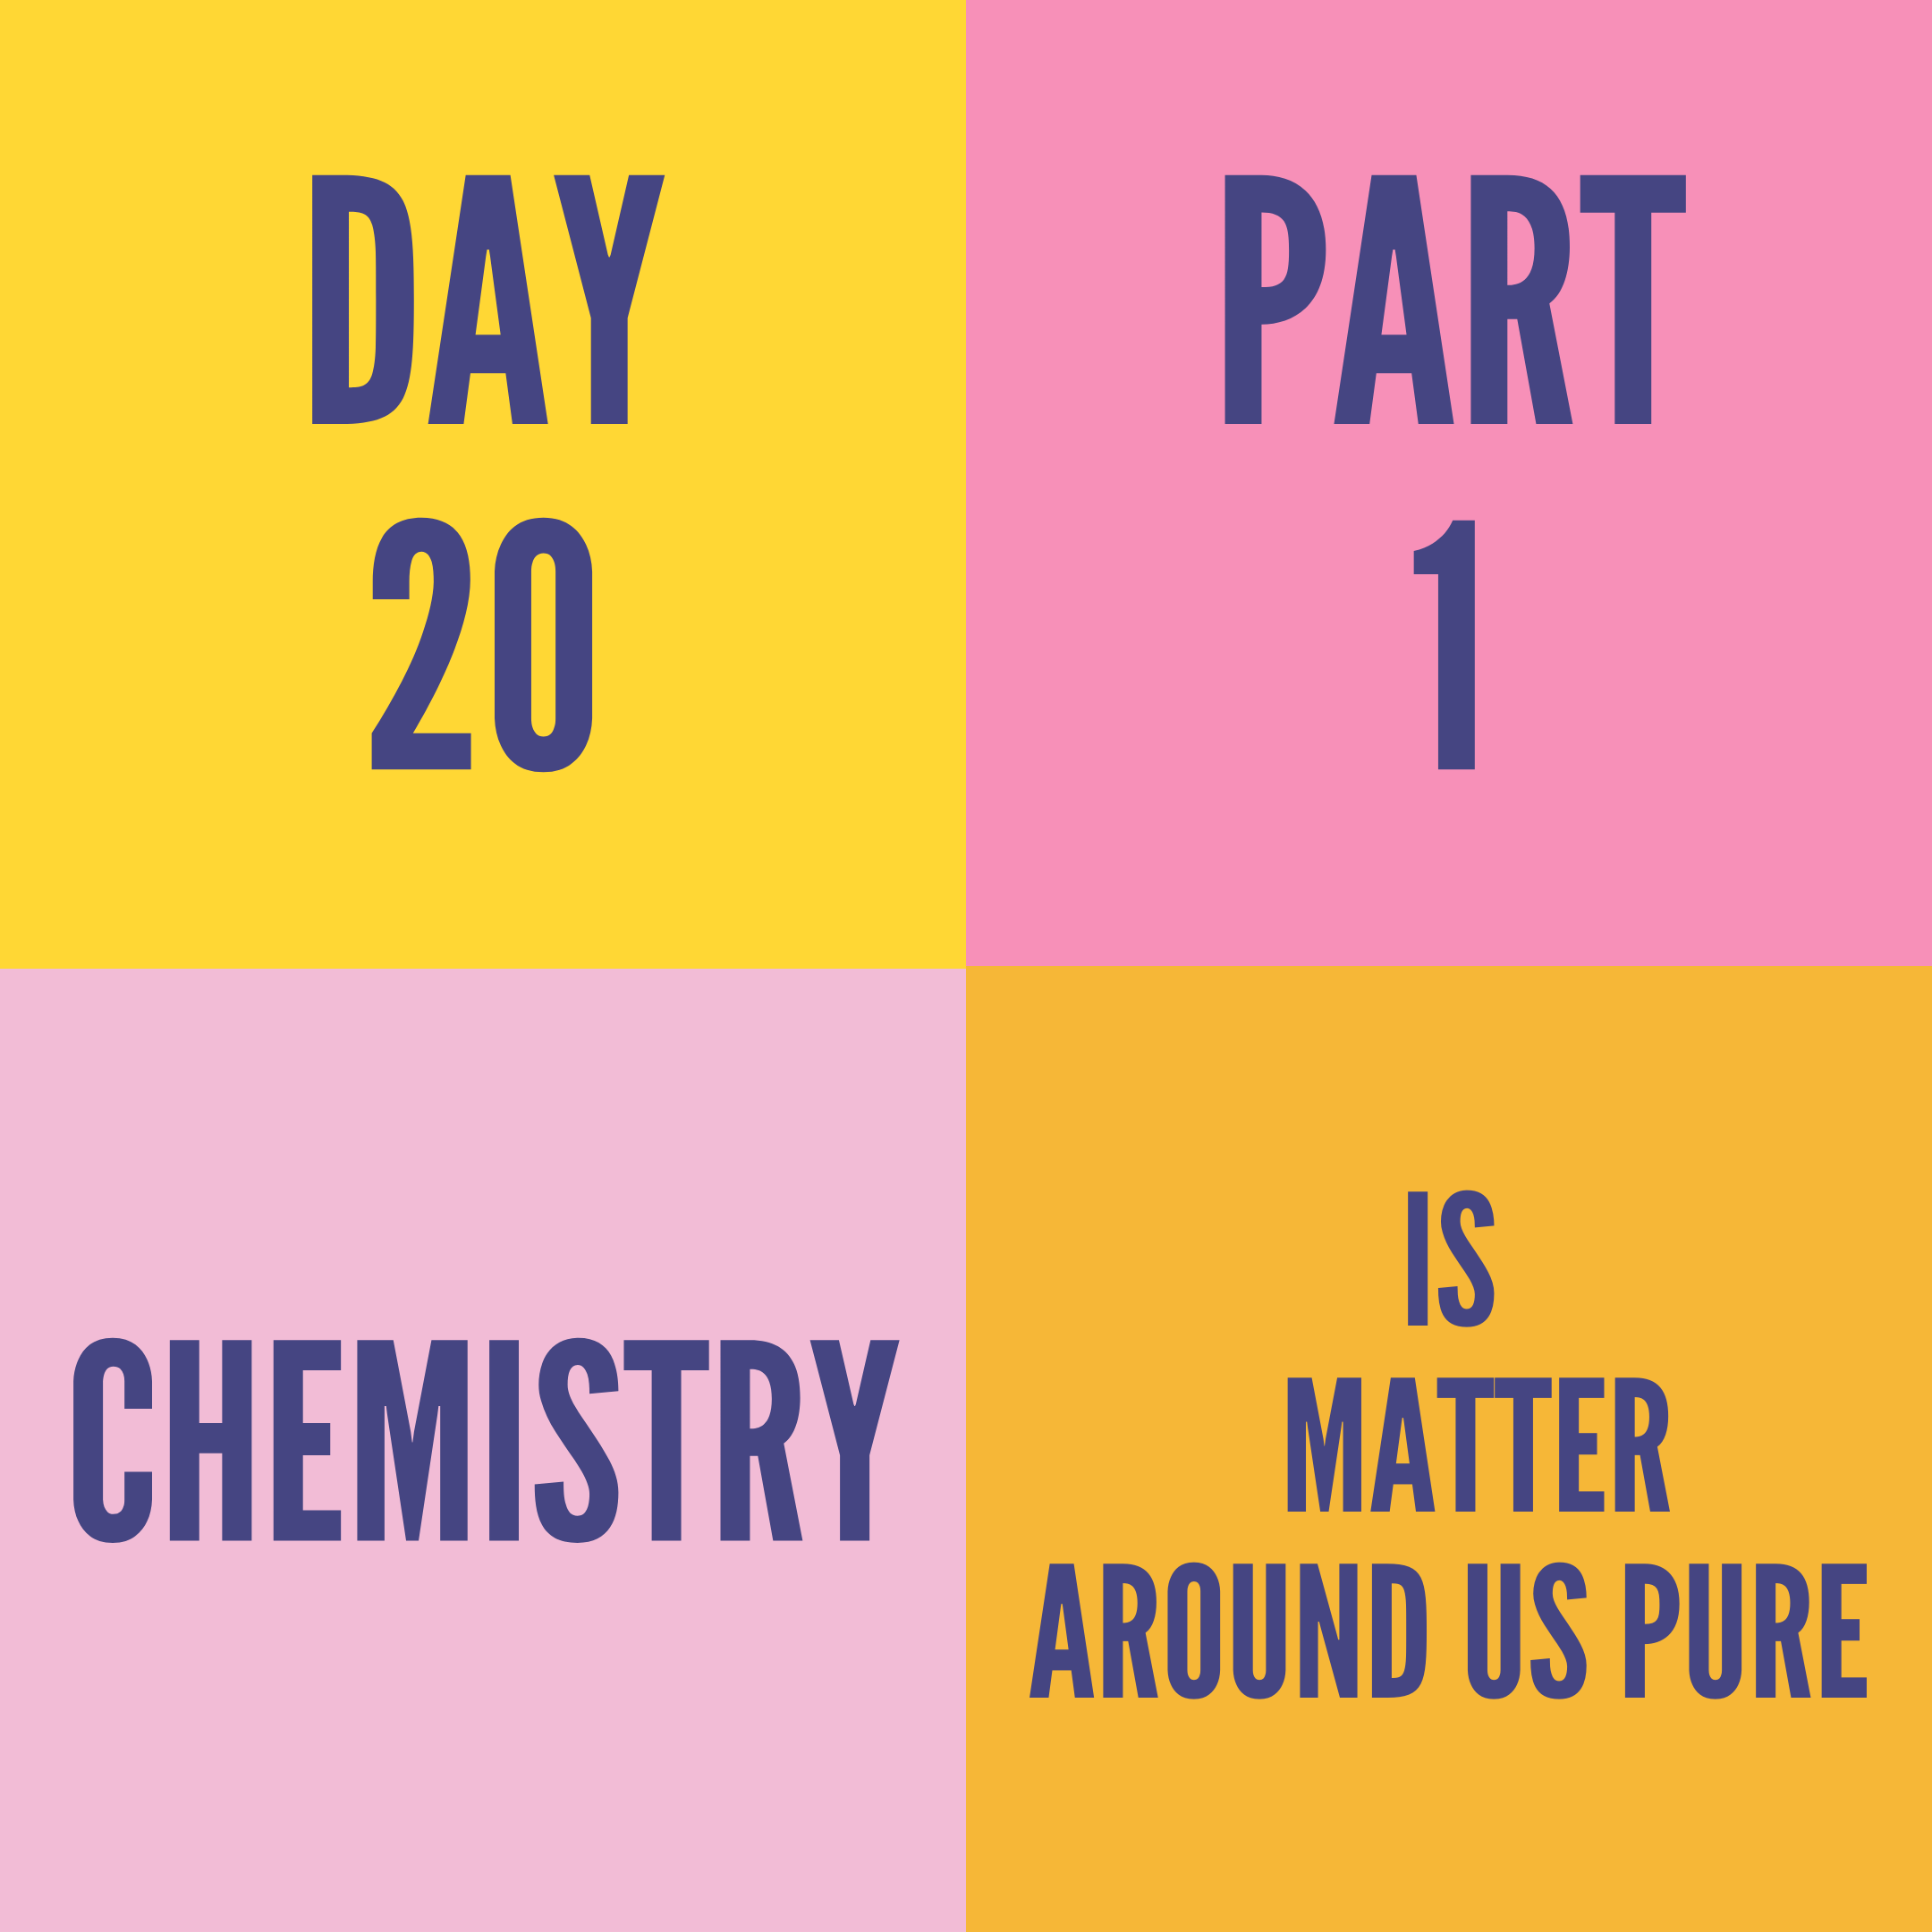 DAY-20 PART-1 IS MATTER AROUND US PURE